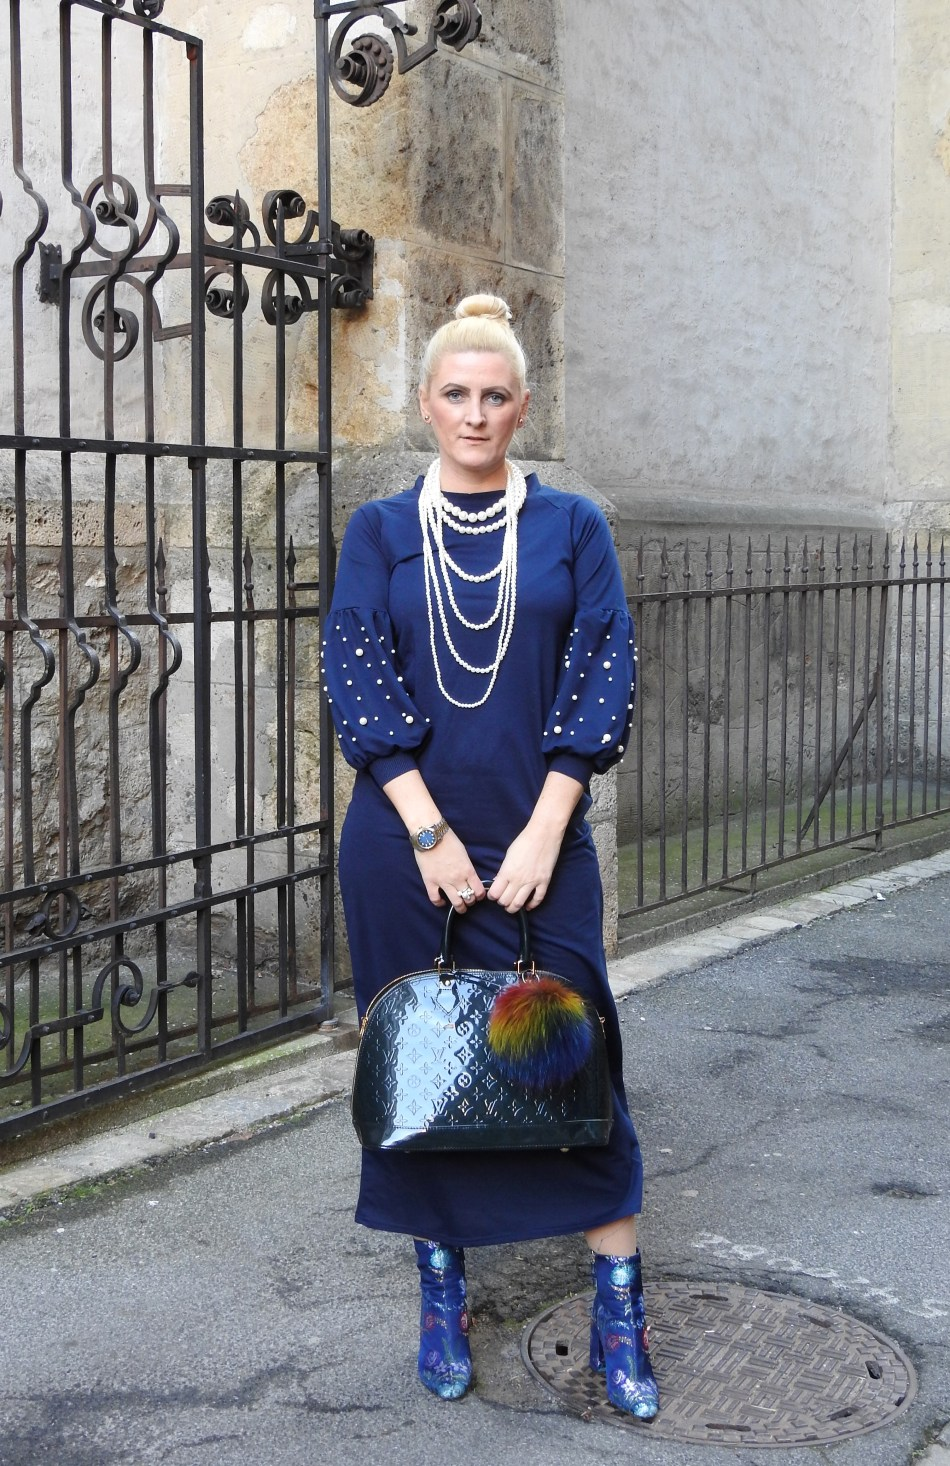 Christmaslook-Festivelook-Maxidress-Pearls-Floralprint-Boots-Zara-Louis-Vuitton-Bag-carrieslifestyle-Tamara-Prutsch